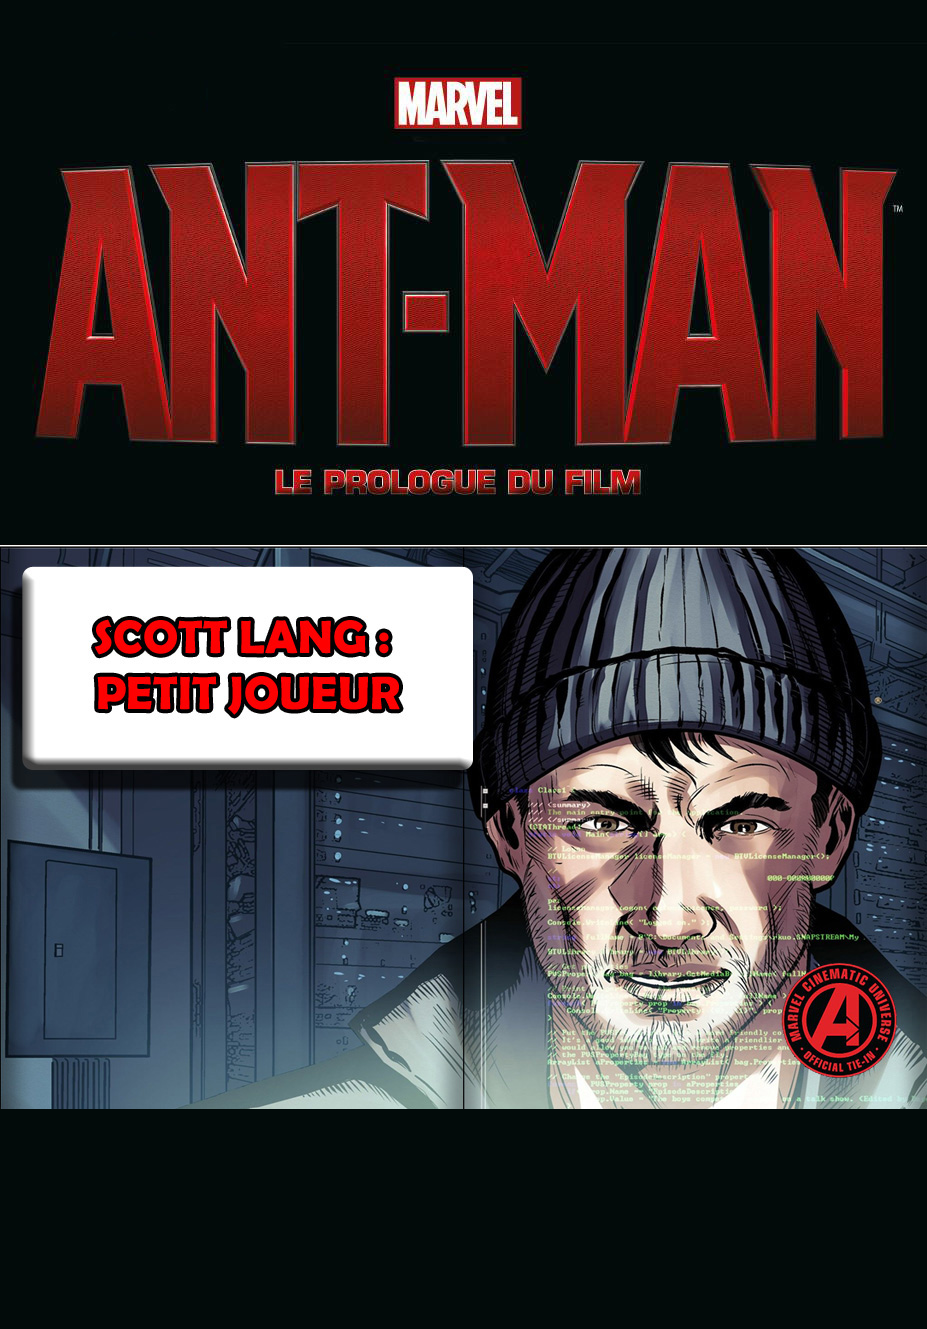 Antman prologue scottlangsmalltime